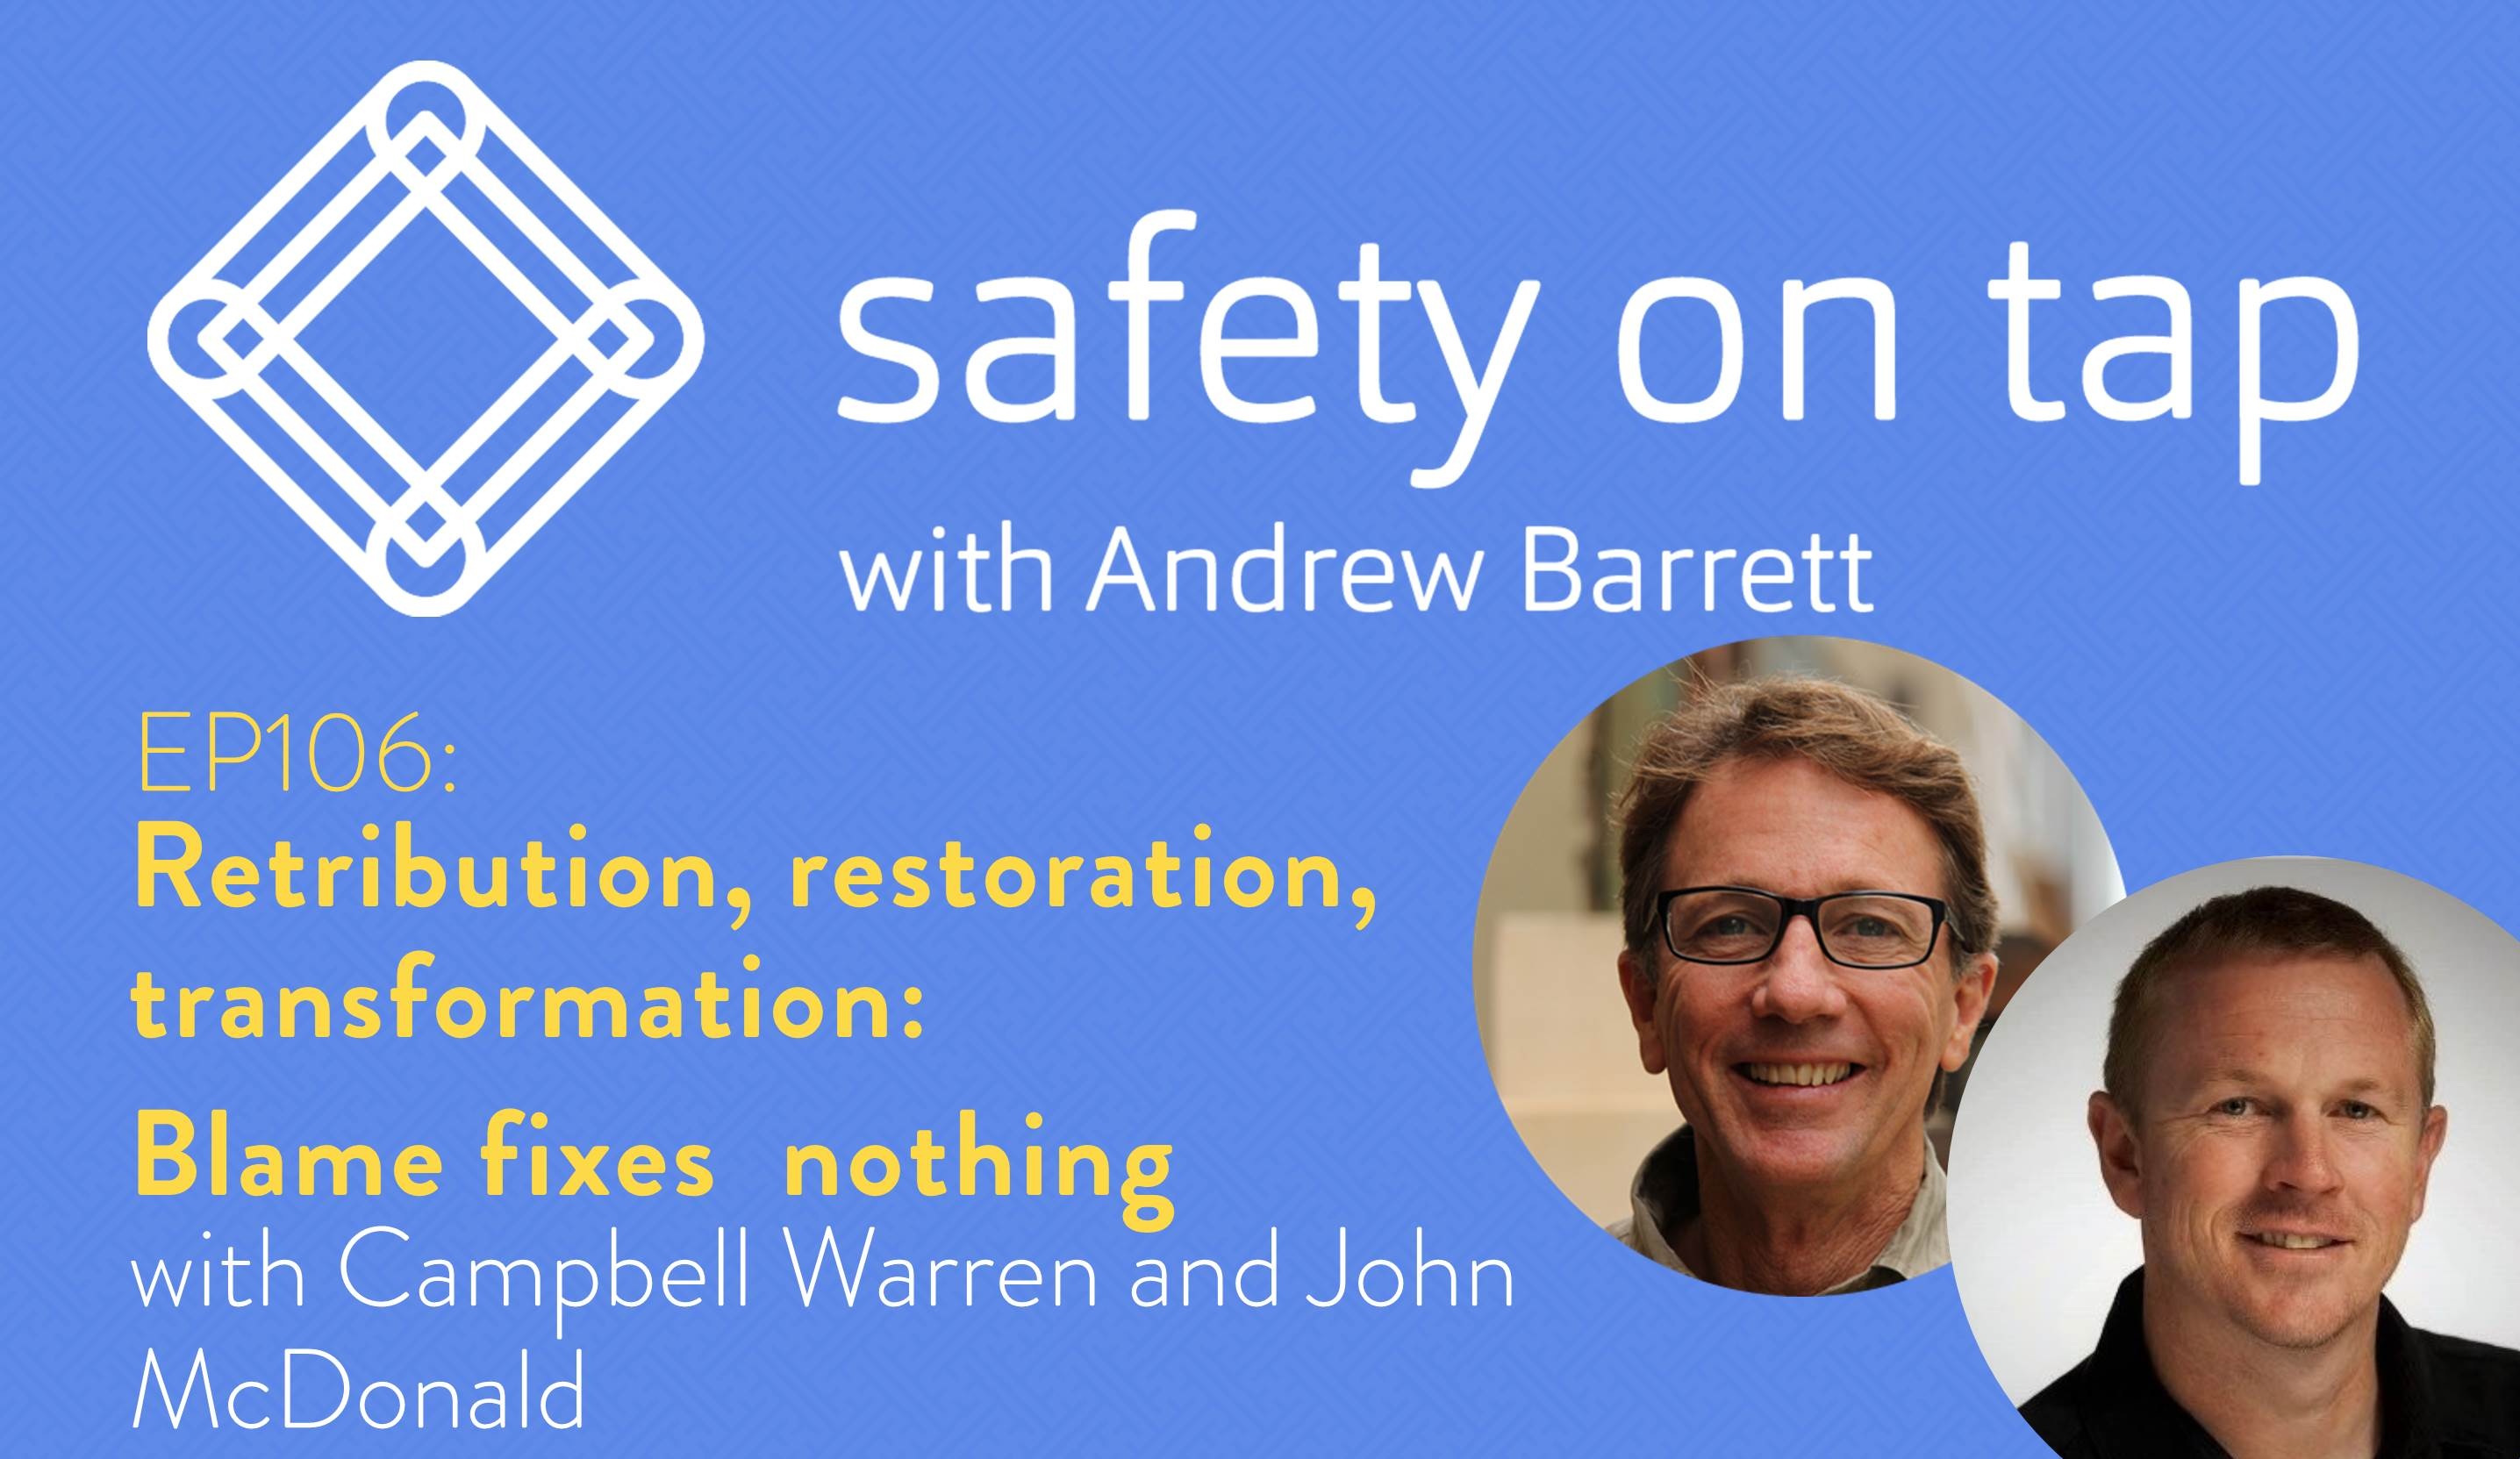 Ep106: Retribution, restoration, transformation: Blame fixes nothing, with Campbell Warren and John McDonald